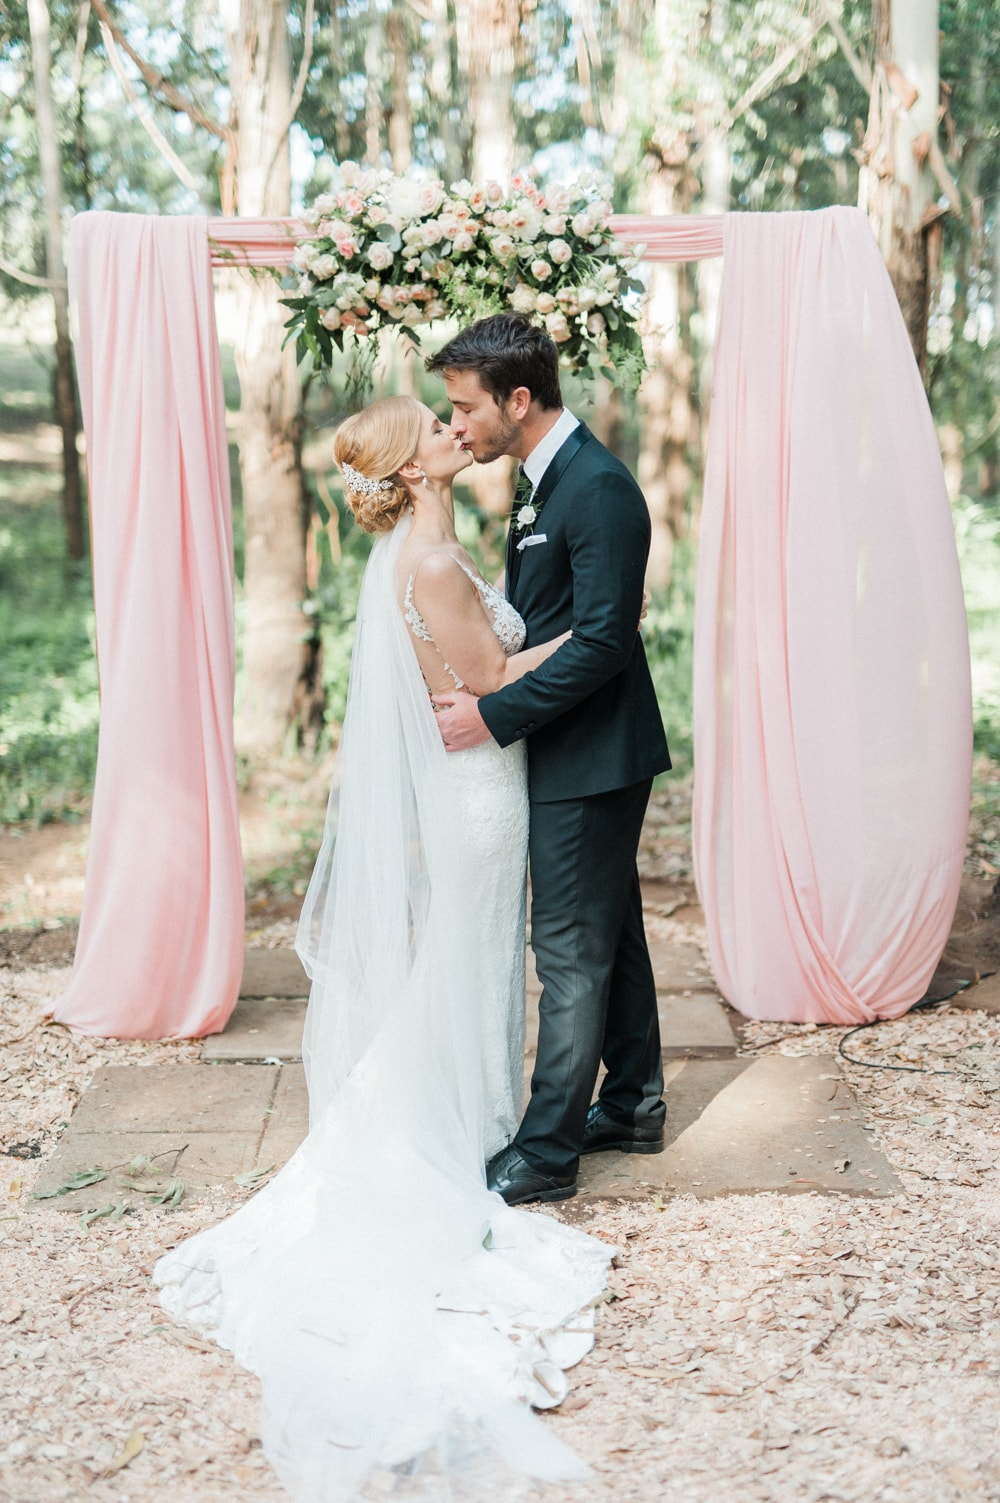 Blush Draped Floral Arch Wedding Ceremony | Image: Bright Girl Photography